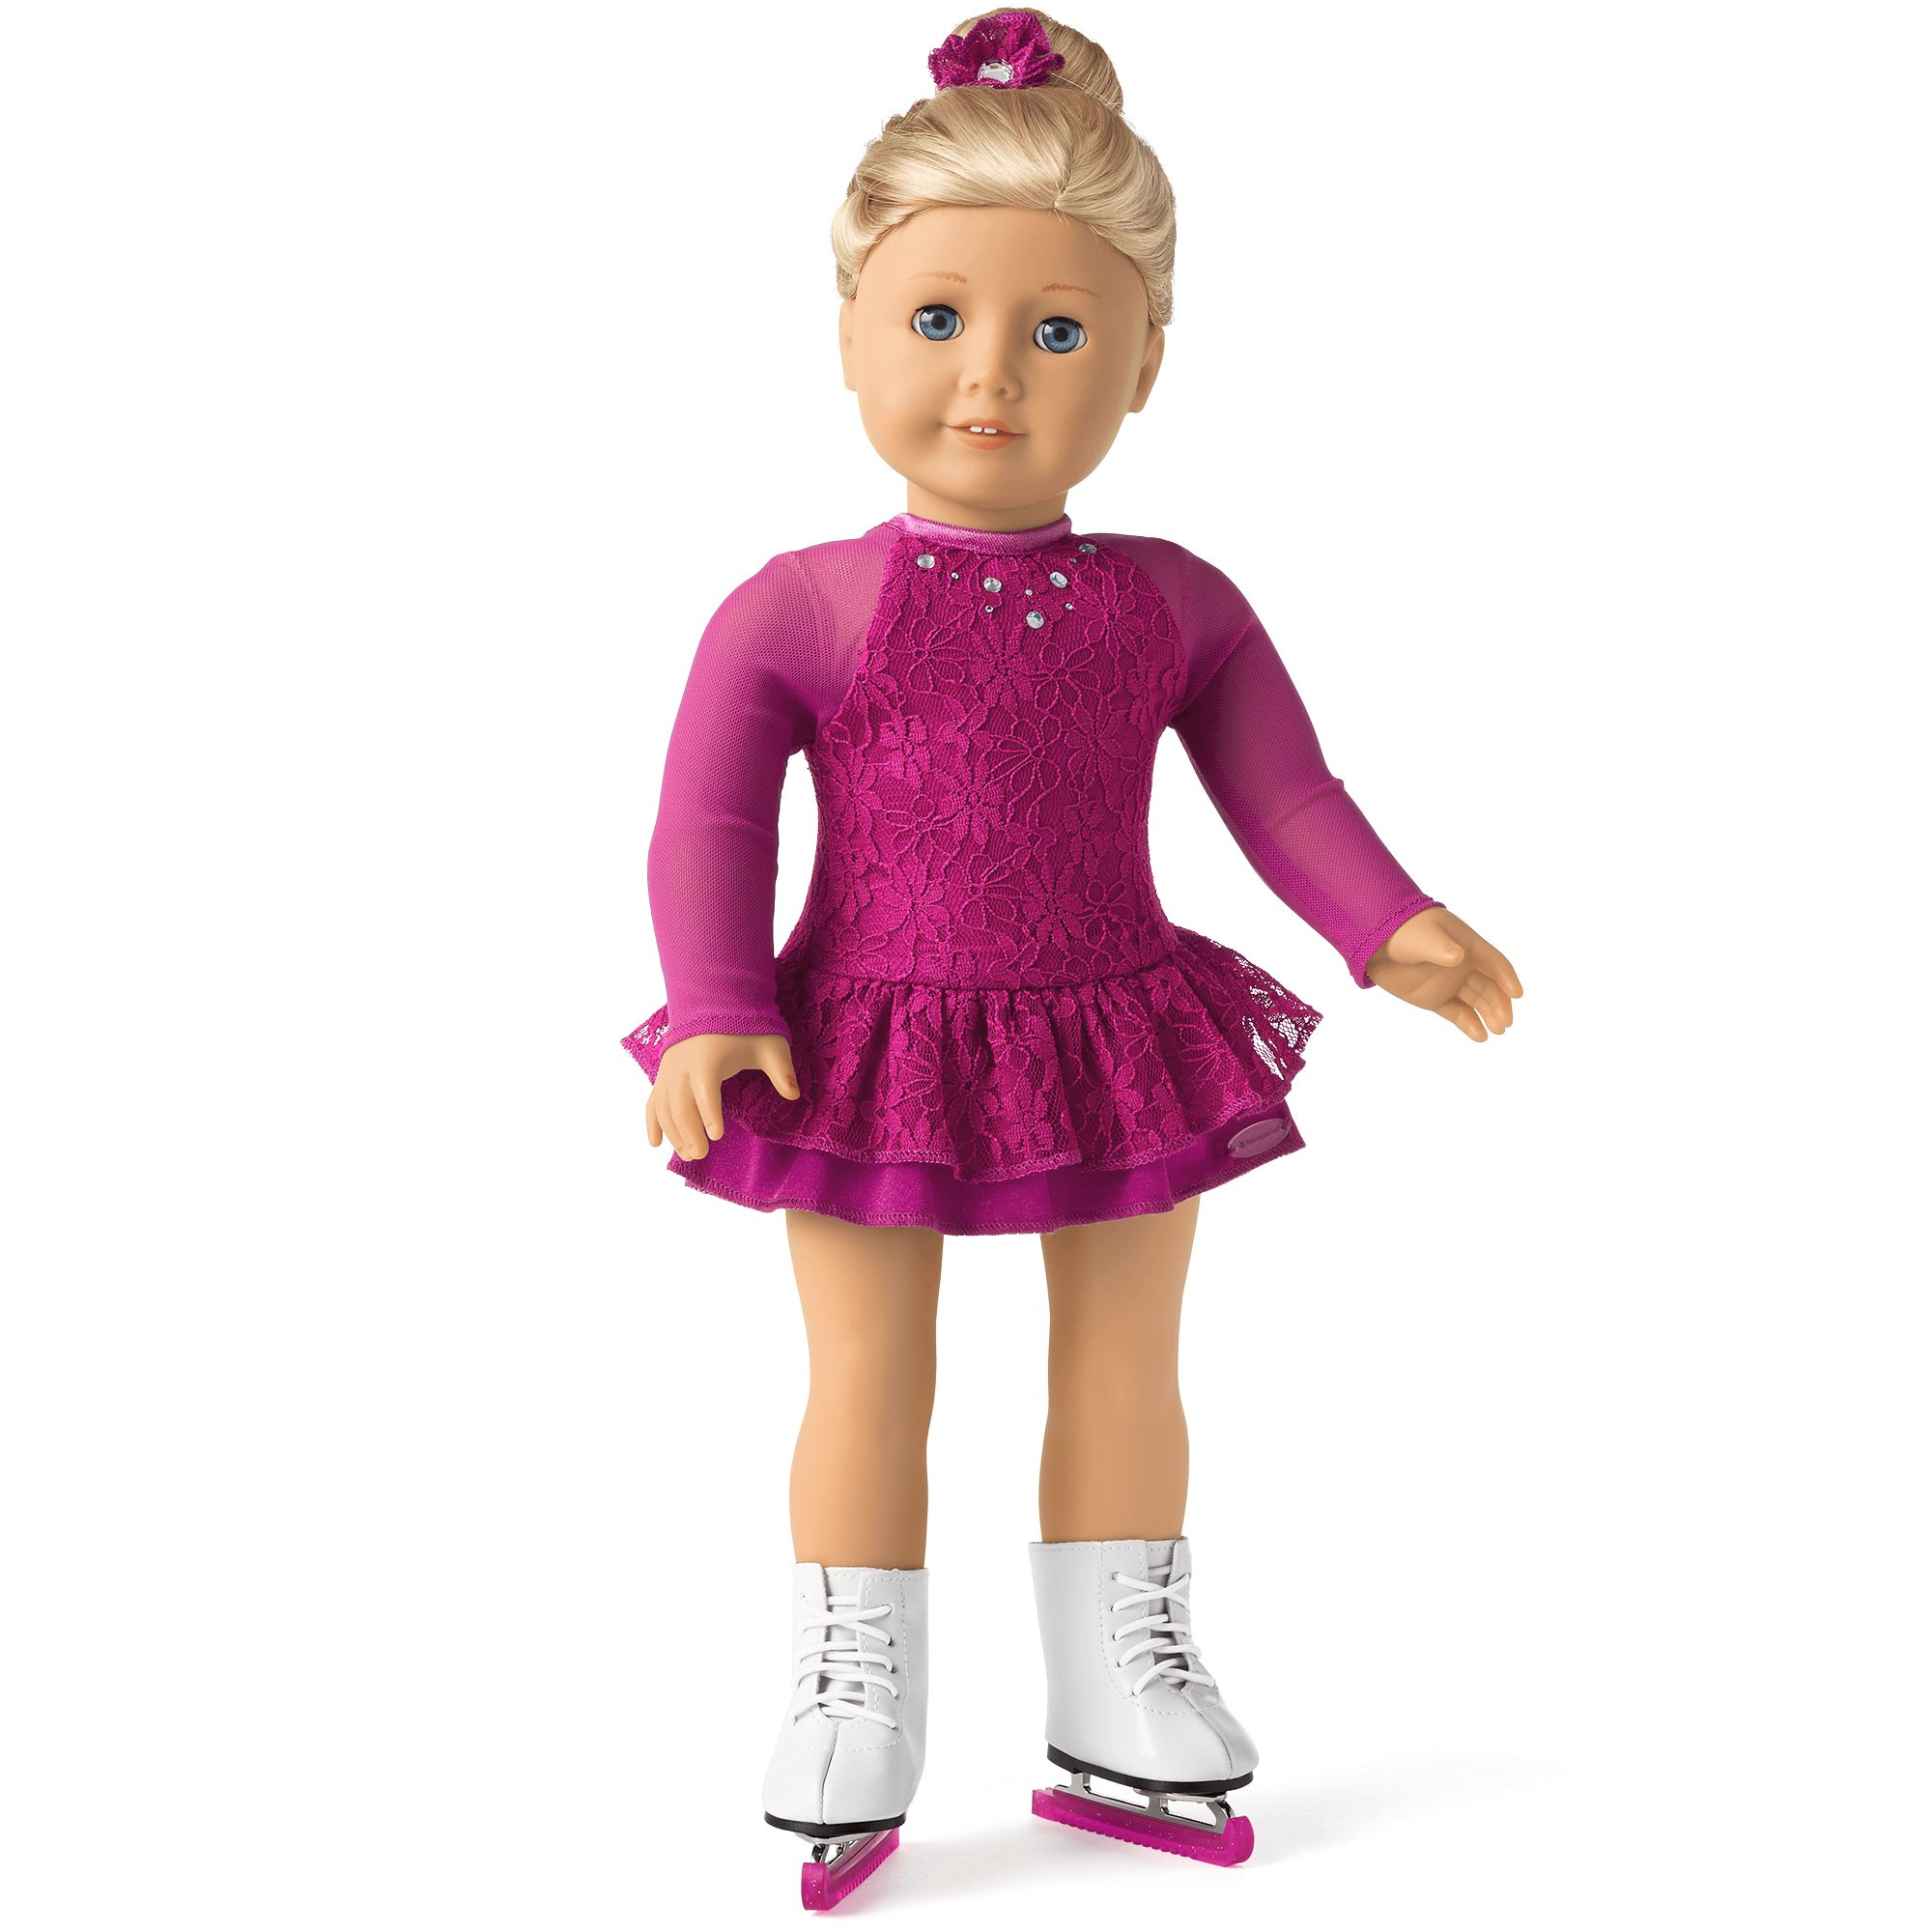 Figure Skating Outfit